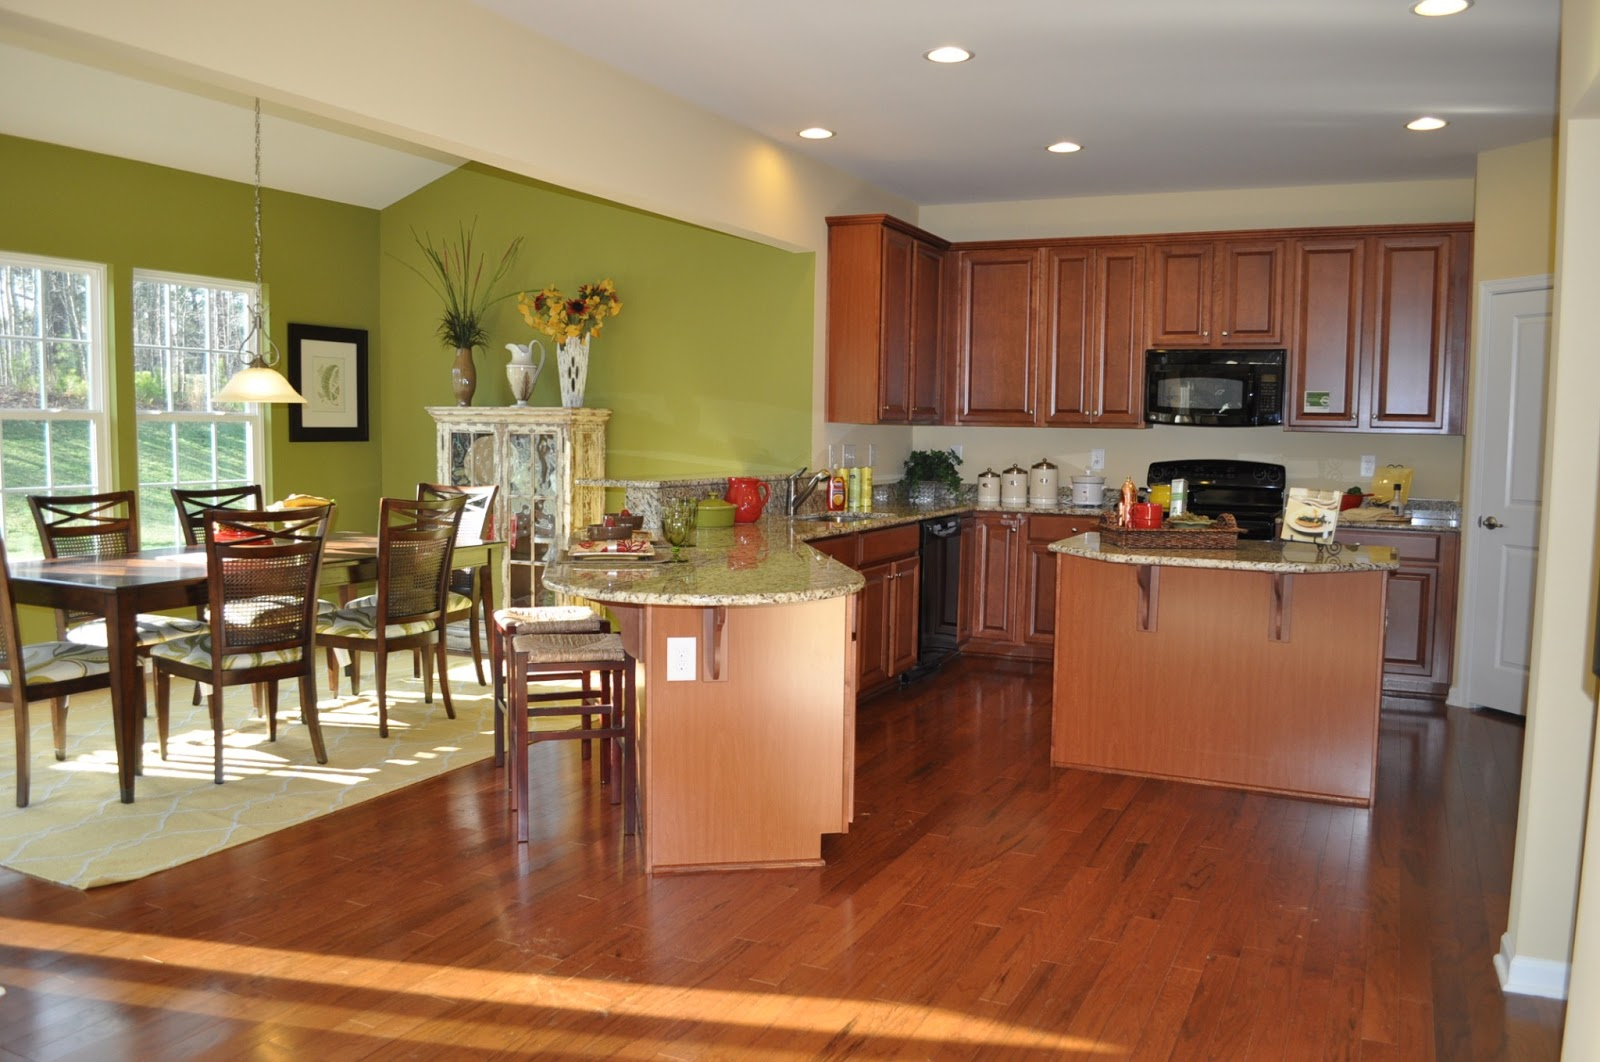 Our 1st home with ryan homes january 2013 for Morning kitchen ideas